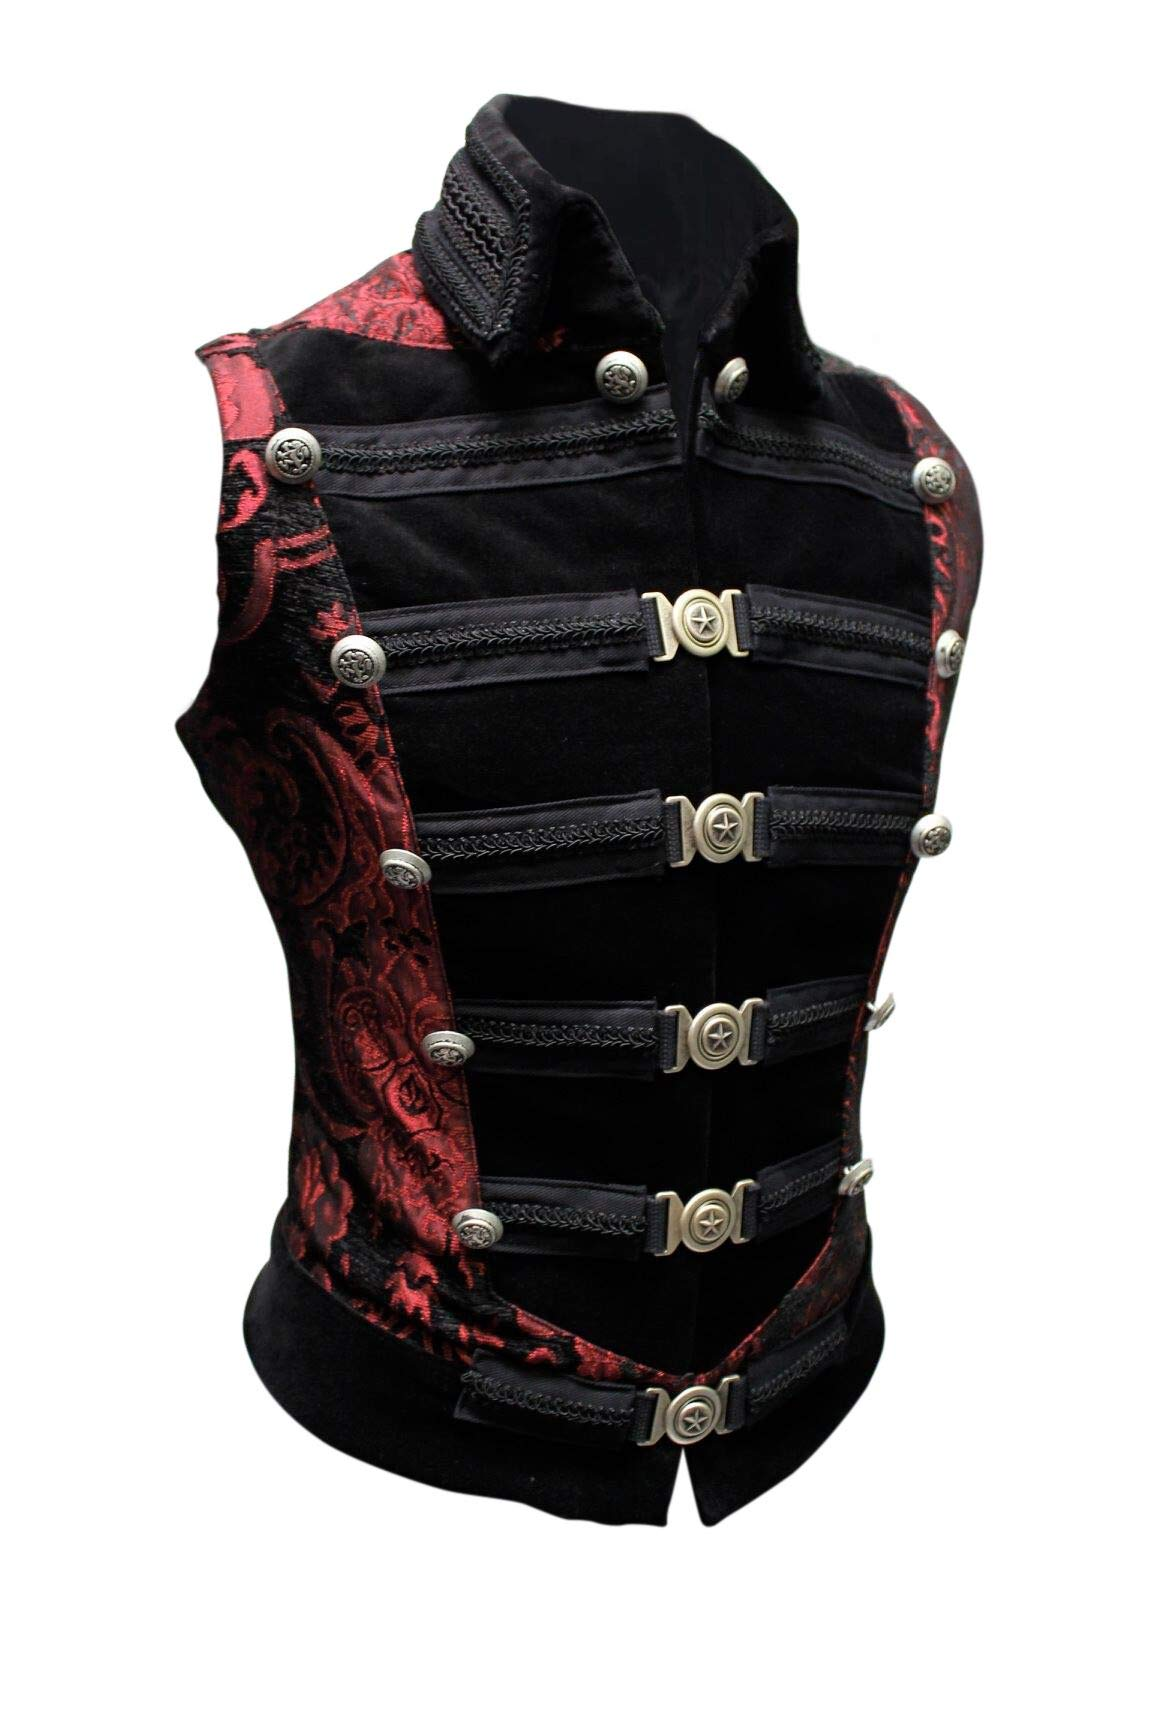 Shrine Men's Victorian Gothic Steampunk Dominion Vest Red Black Tapestry (XXL) by Shrine Of Hollywood